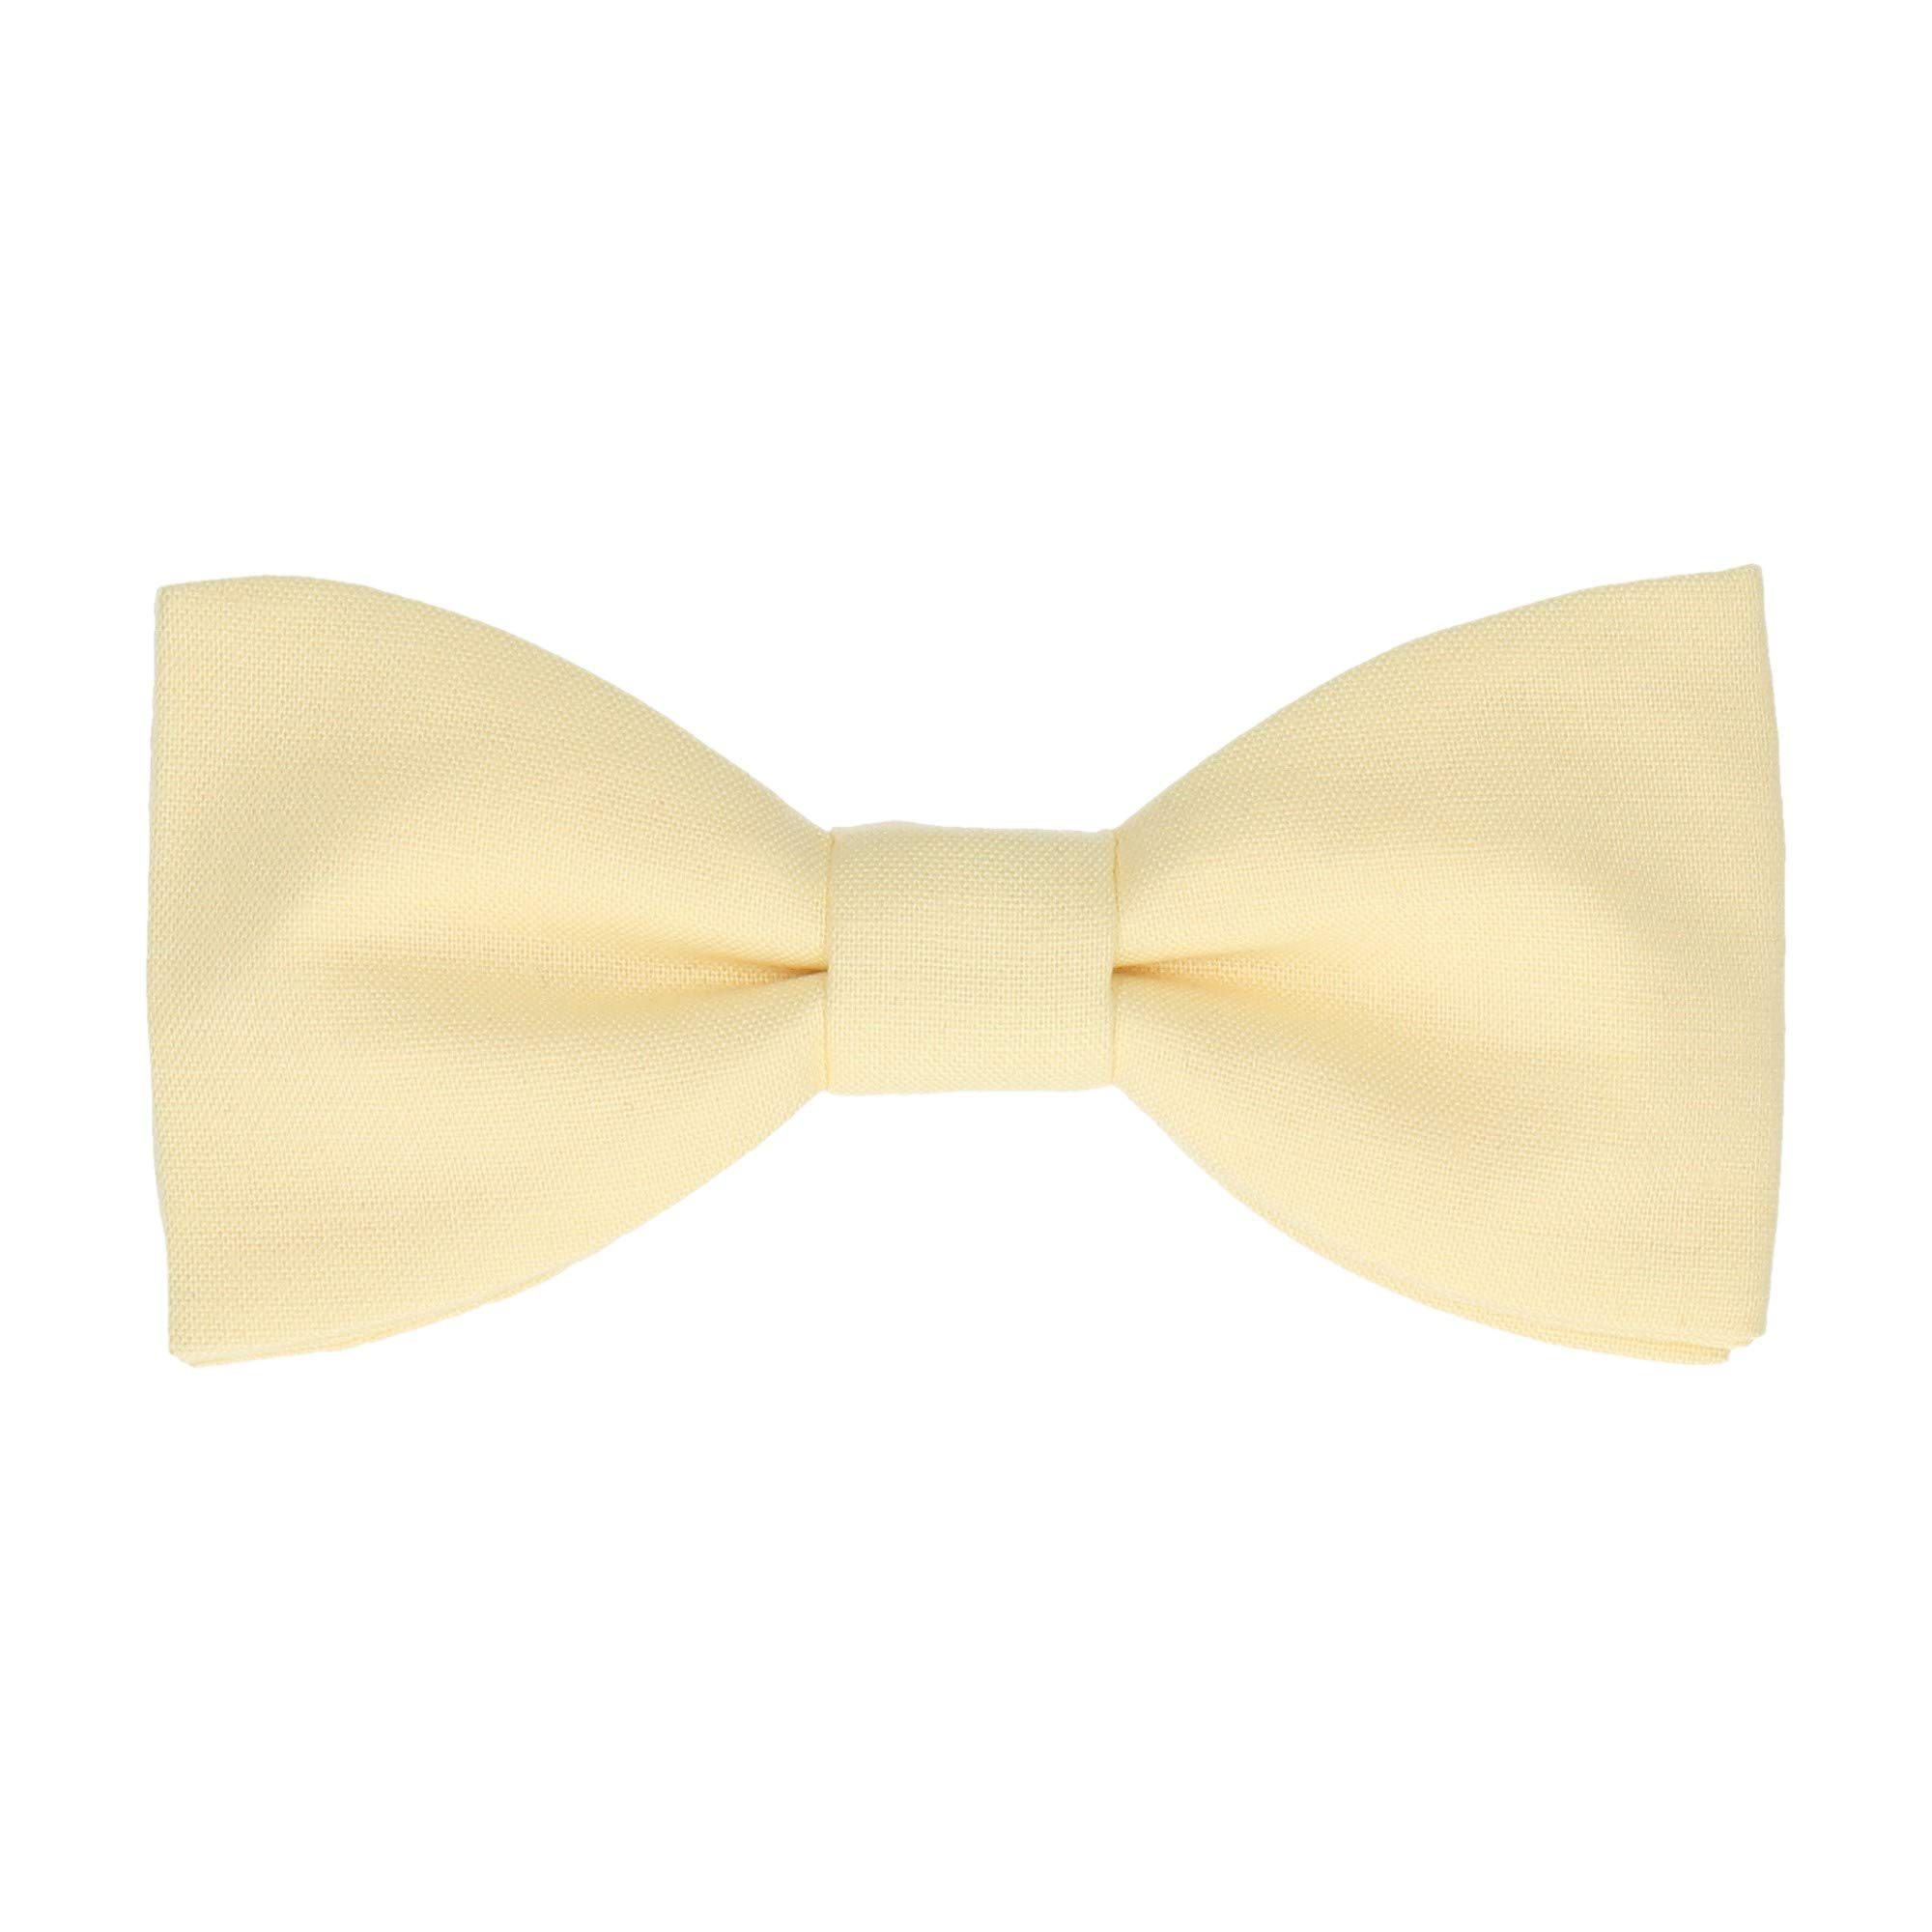 41535179a420 Mrs Bow Tie Cotton Bow Tie, Pre-Tied - Pale Yellow